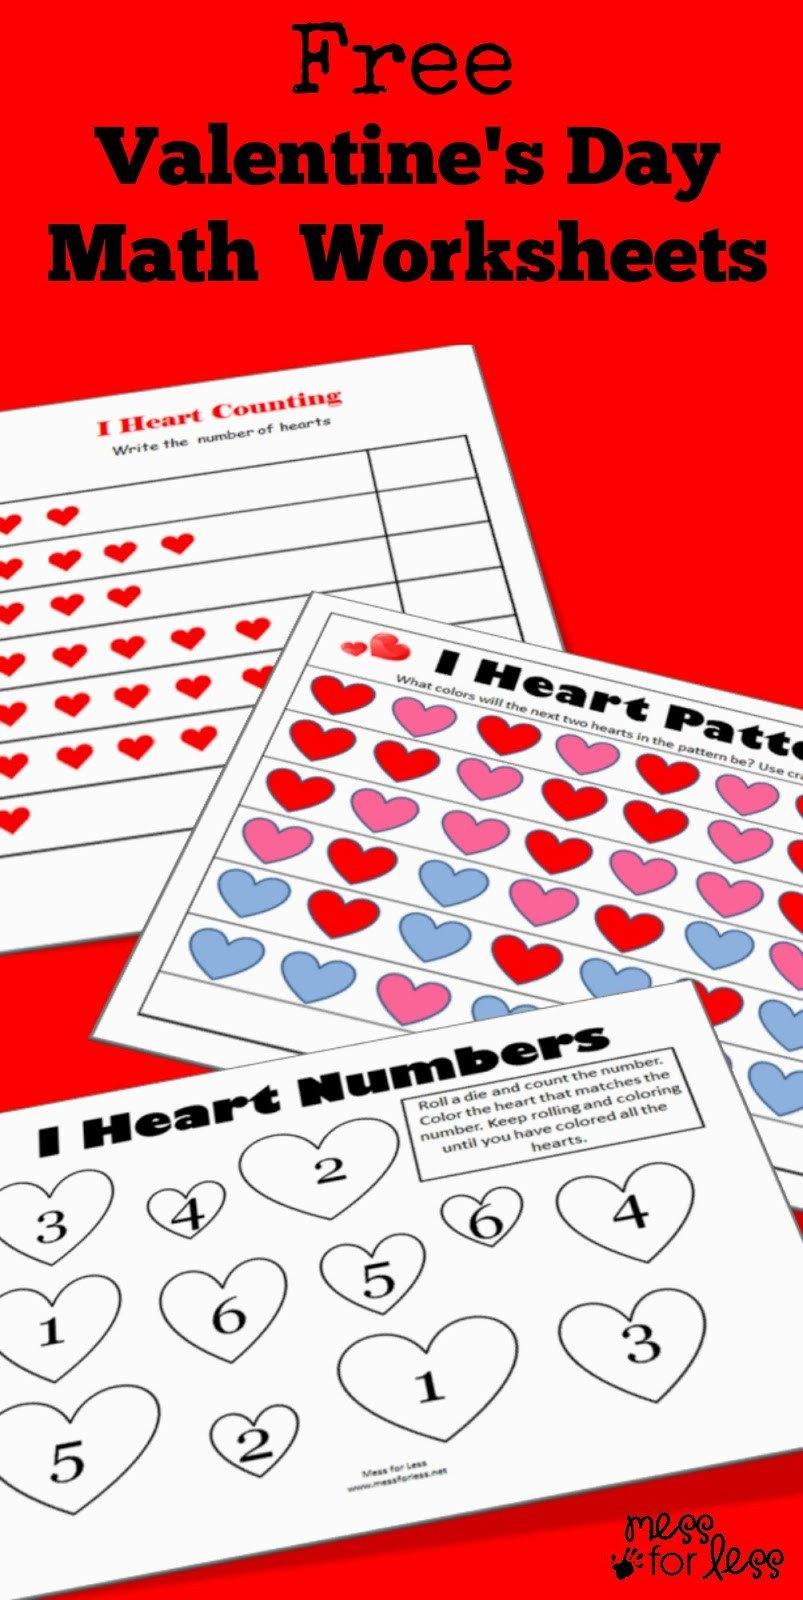 Valentines Day Kindergarten Worksheets Valentine S Math Kindergarten Worksheets Mess for Less